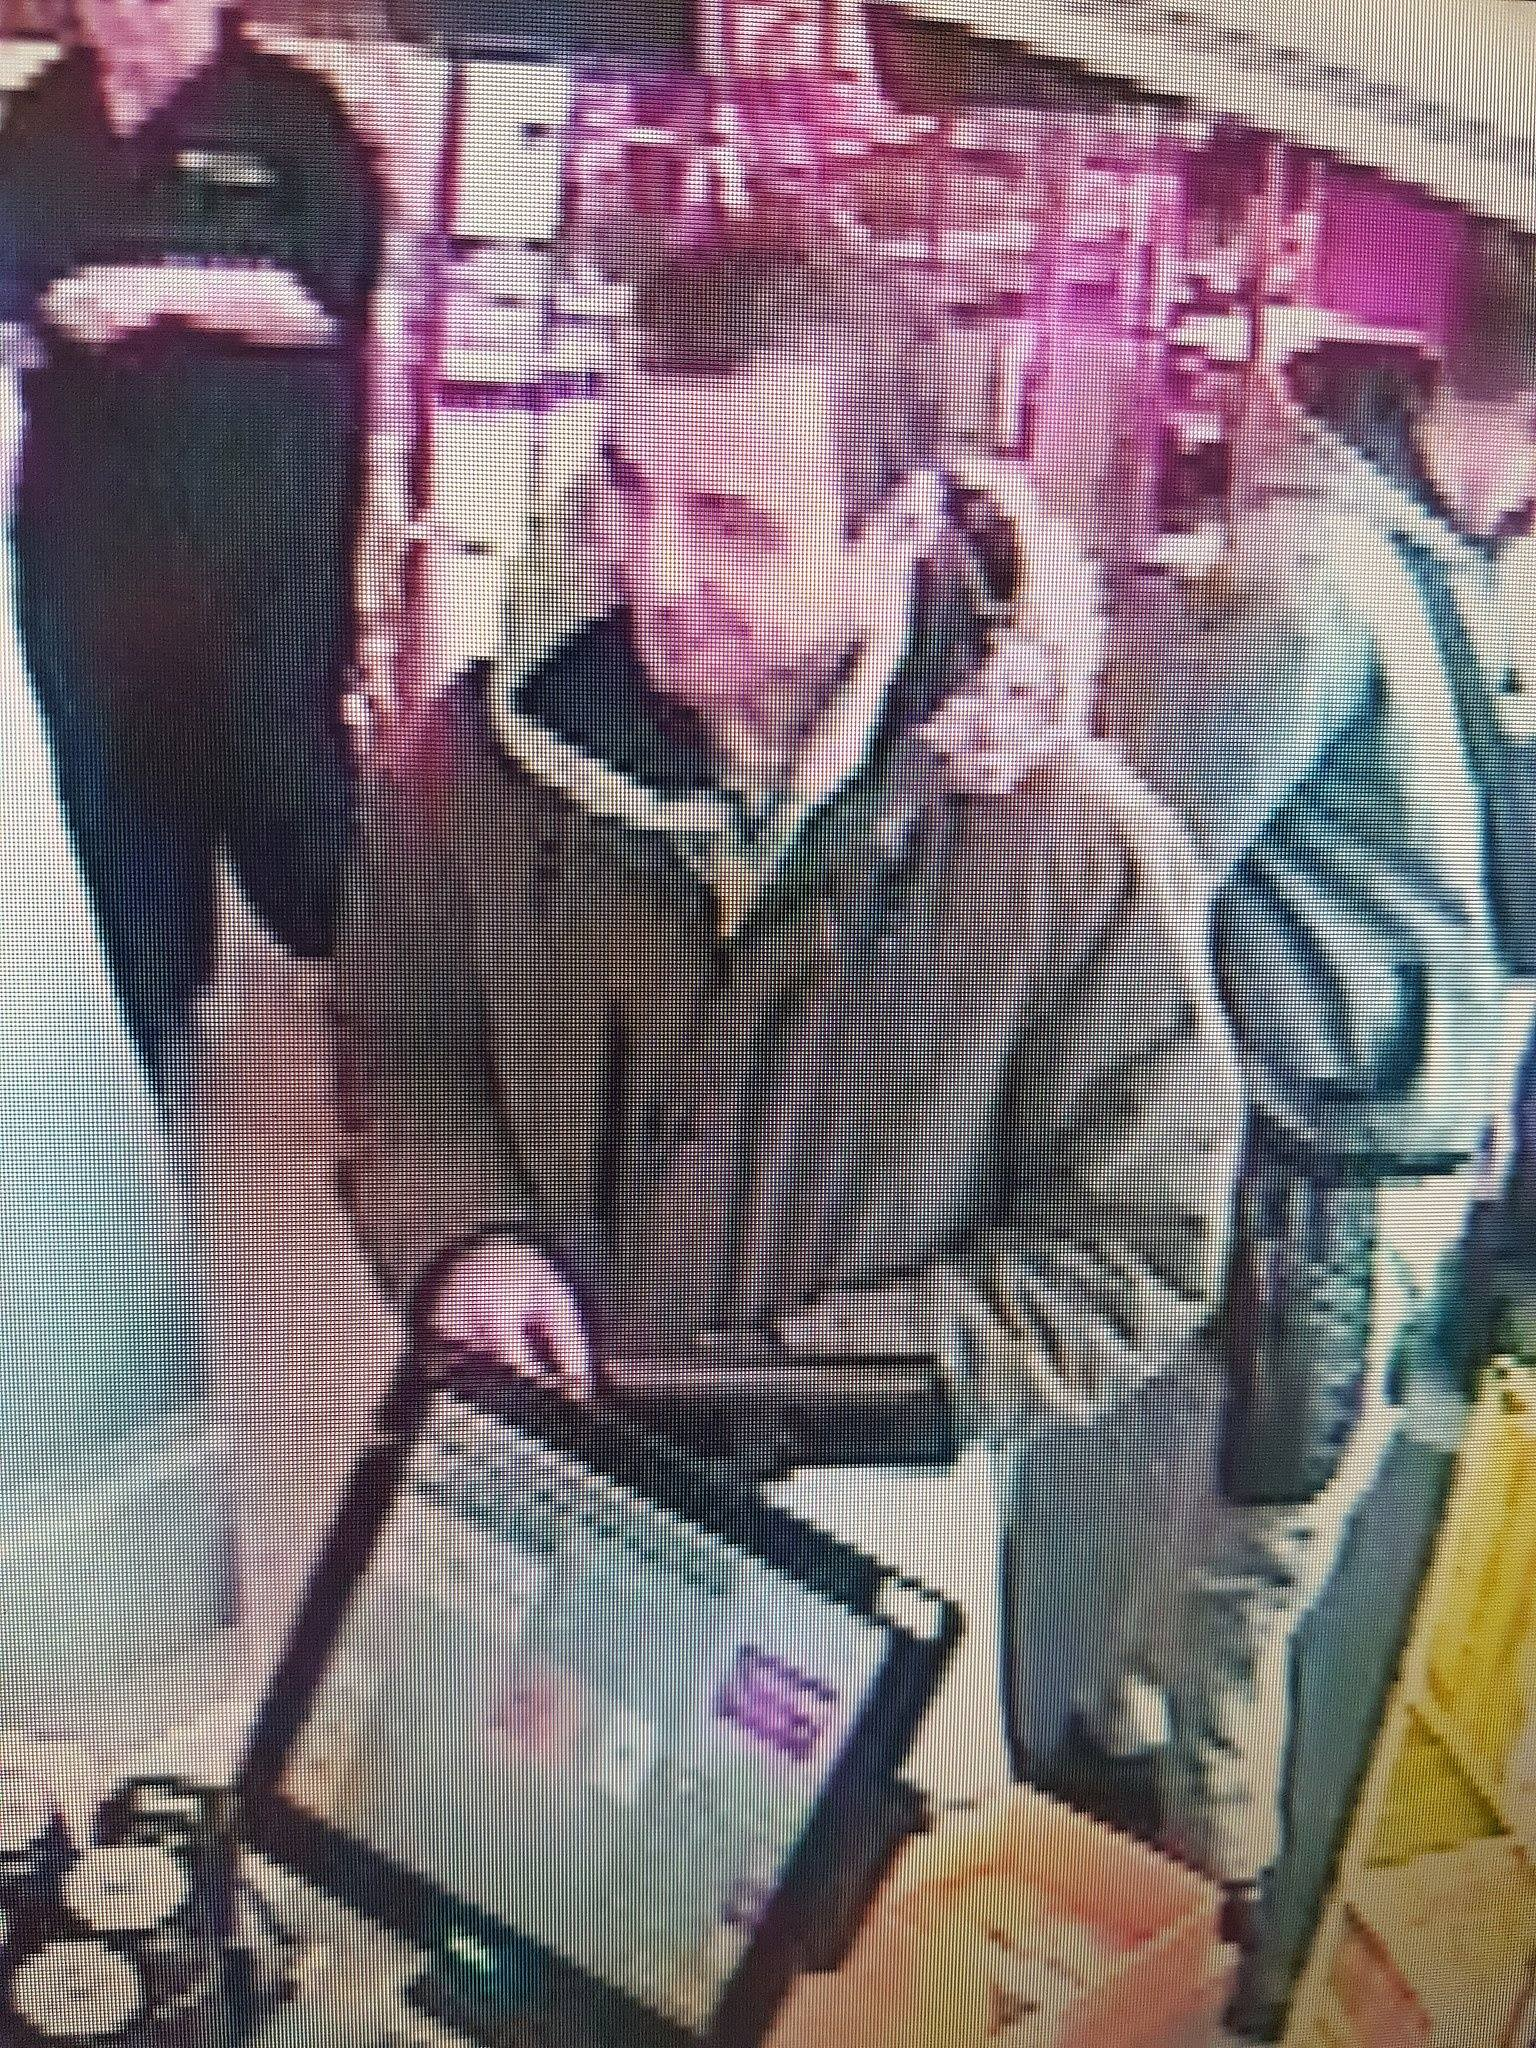 Police appeal after lost bank card was used 'fraudulently'